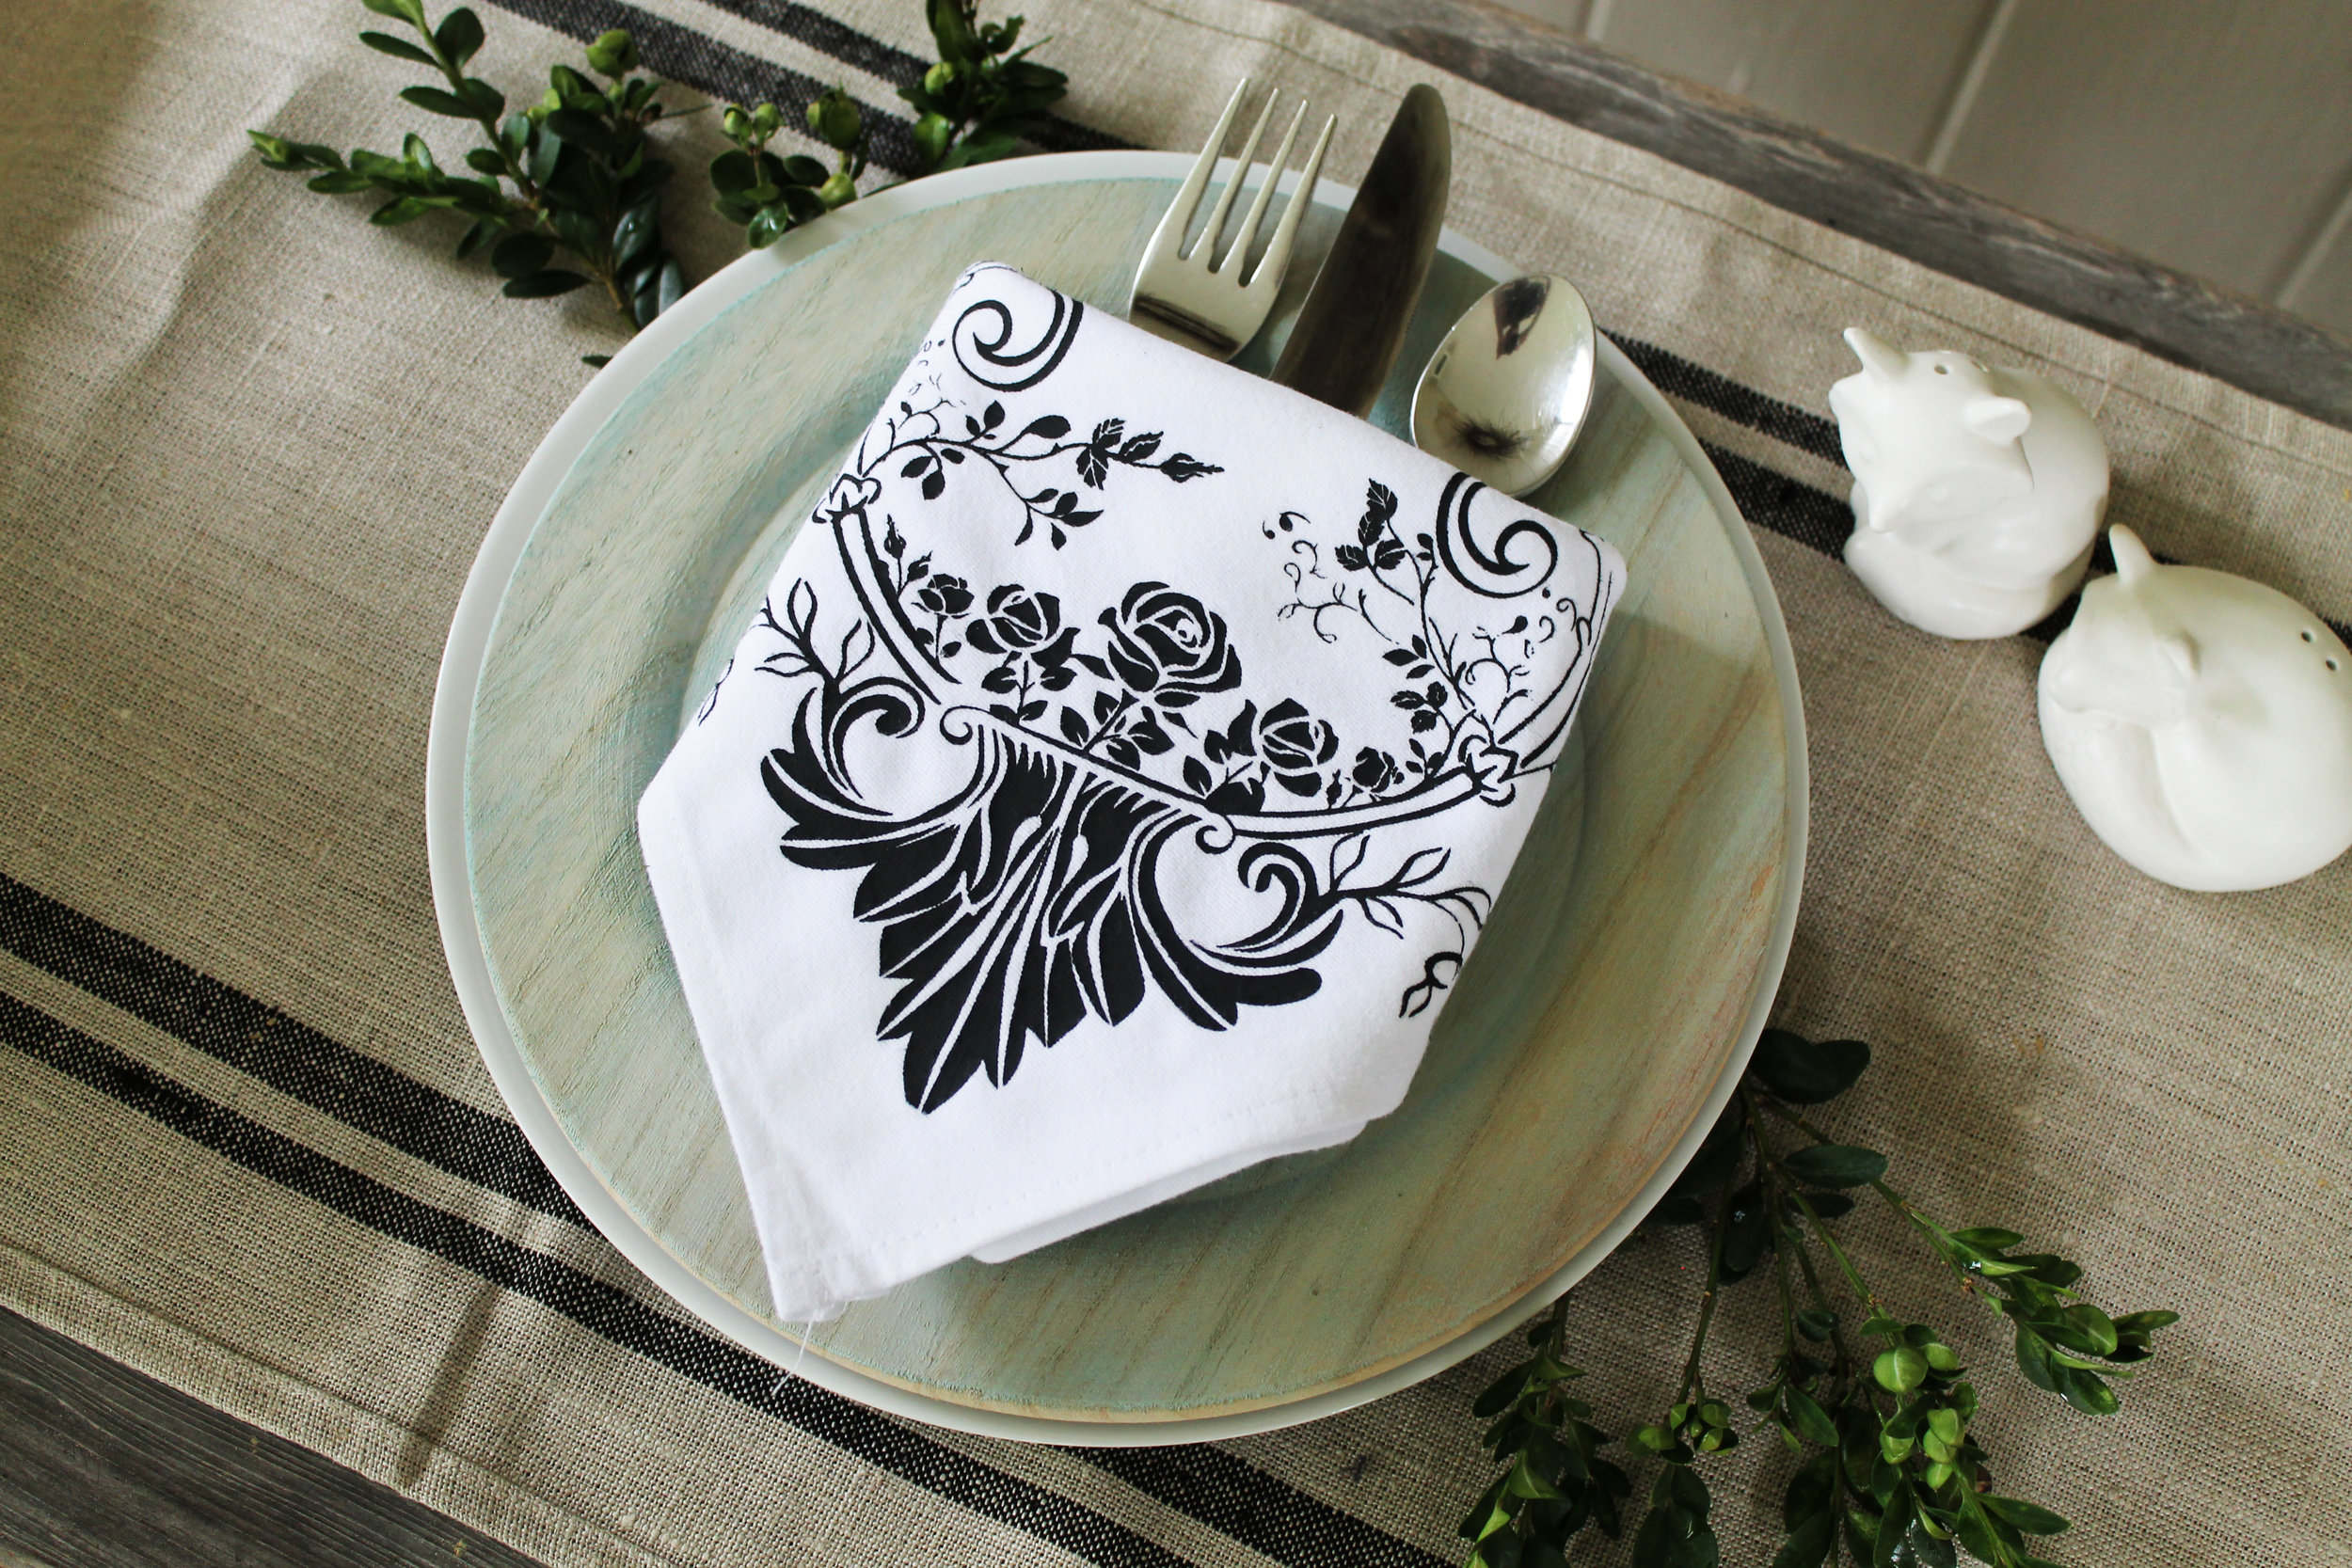 We released  7 new Silk Screen Stencil designs  that have delicate images, perfect for furniture, textiles, walls and more. Cari used the Provence Rose stencil (632717) on our Napkin set (633929) which includes four napkins in the set and they made from 100% cotton.